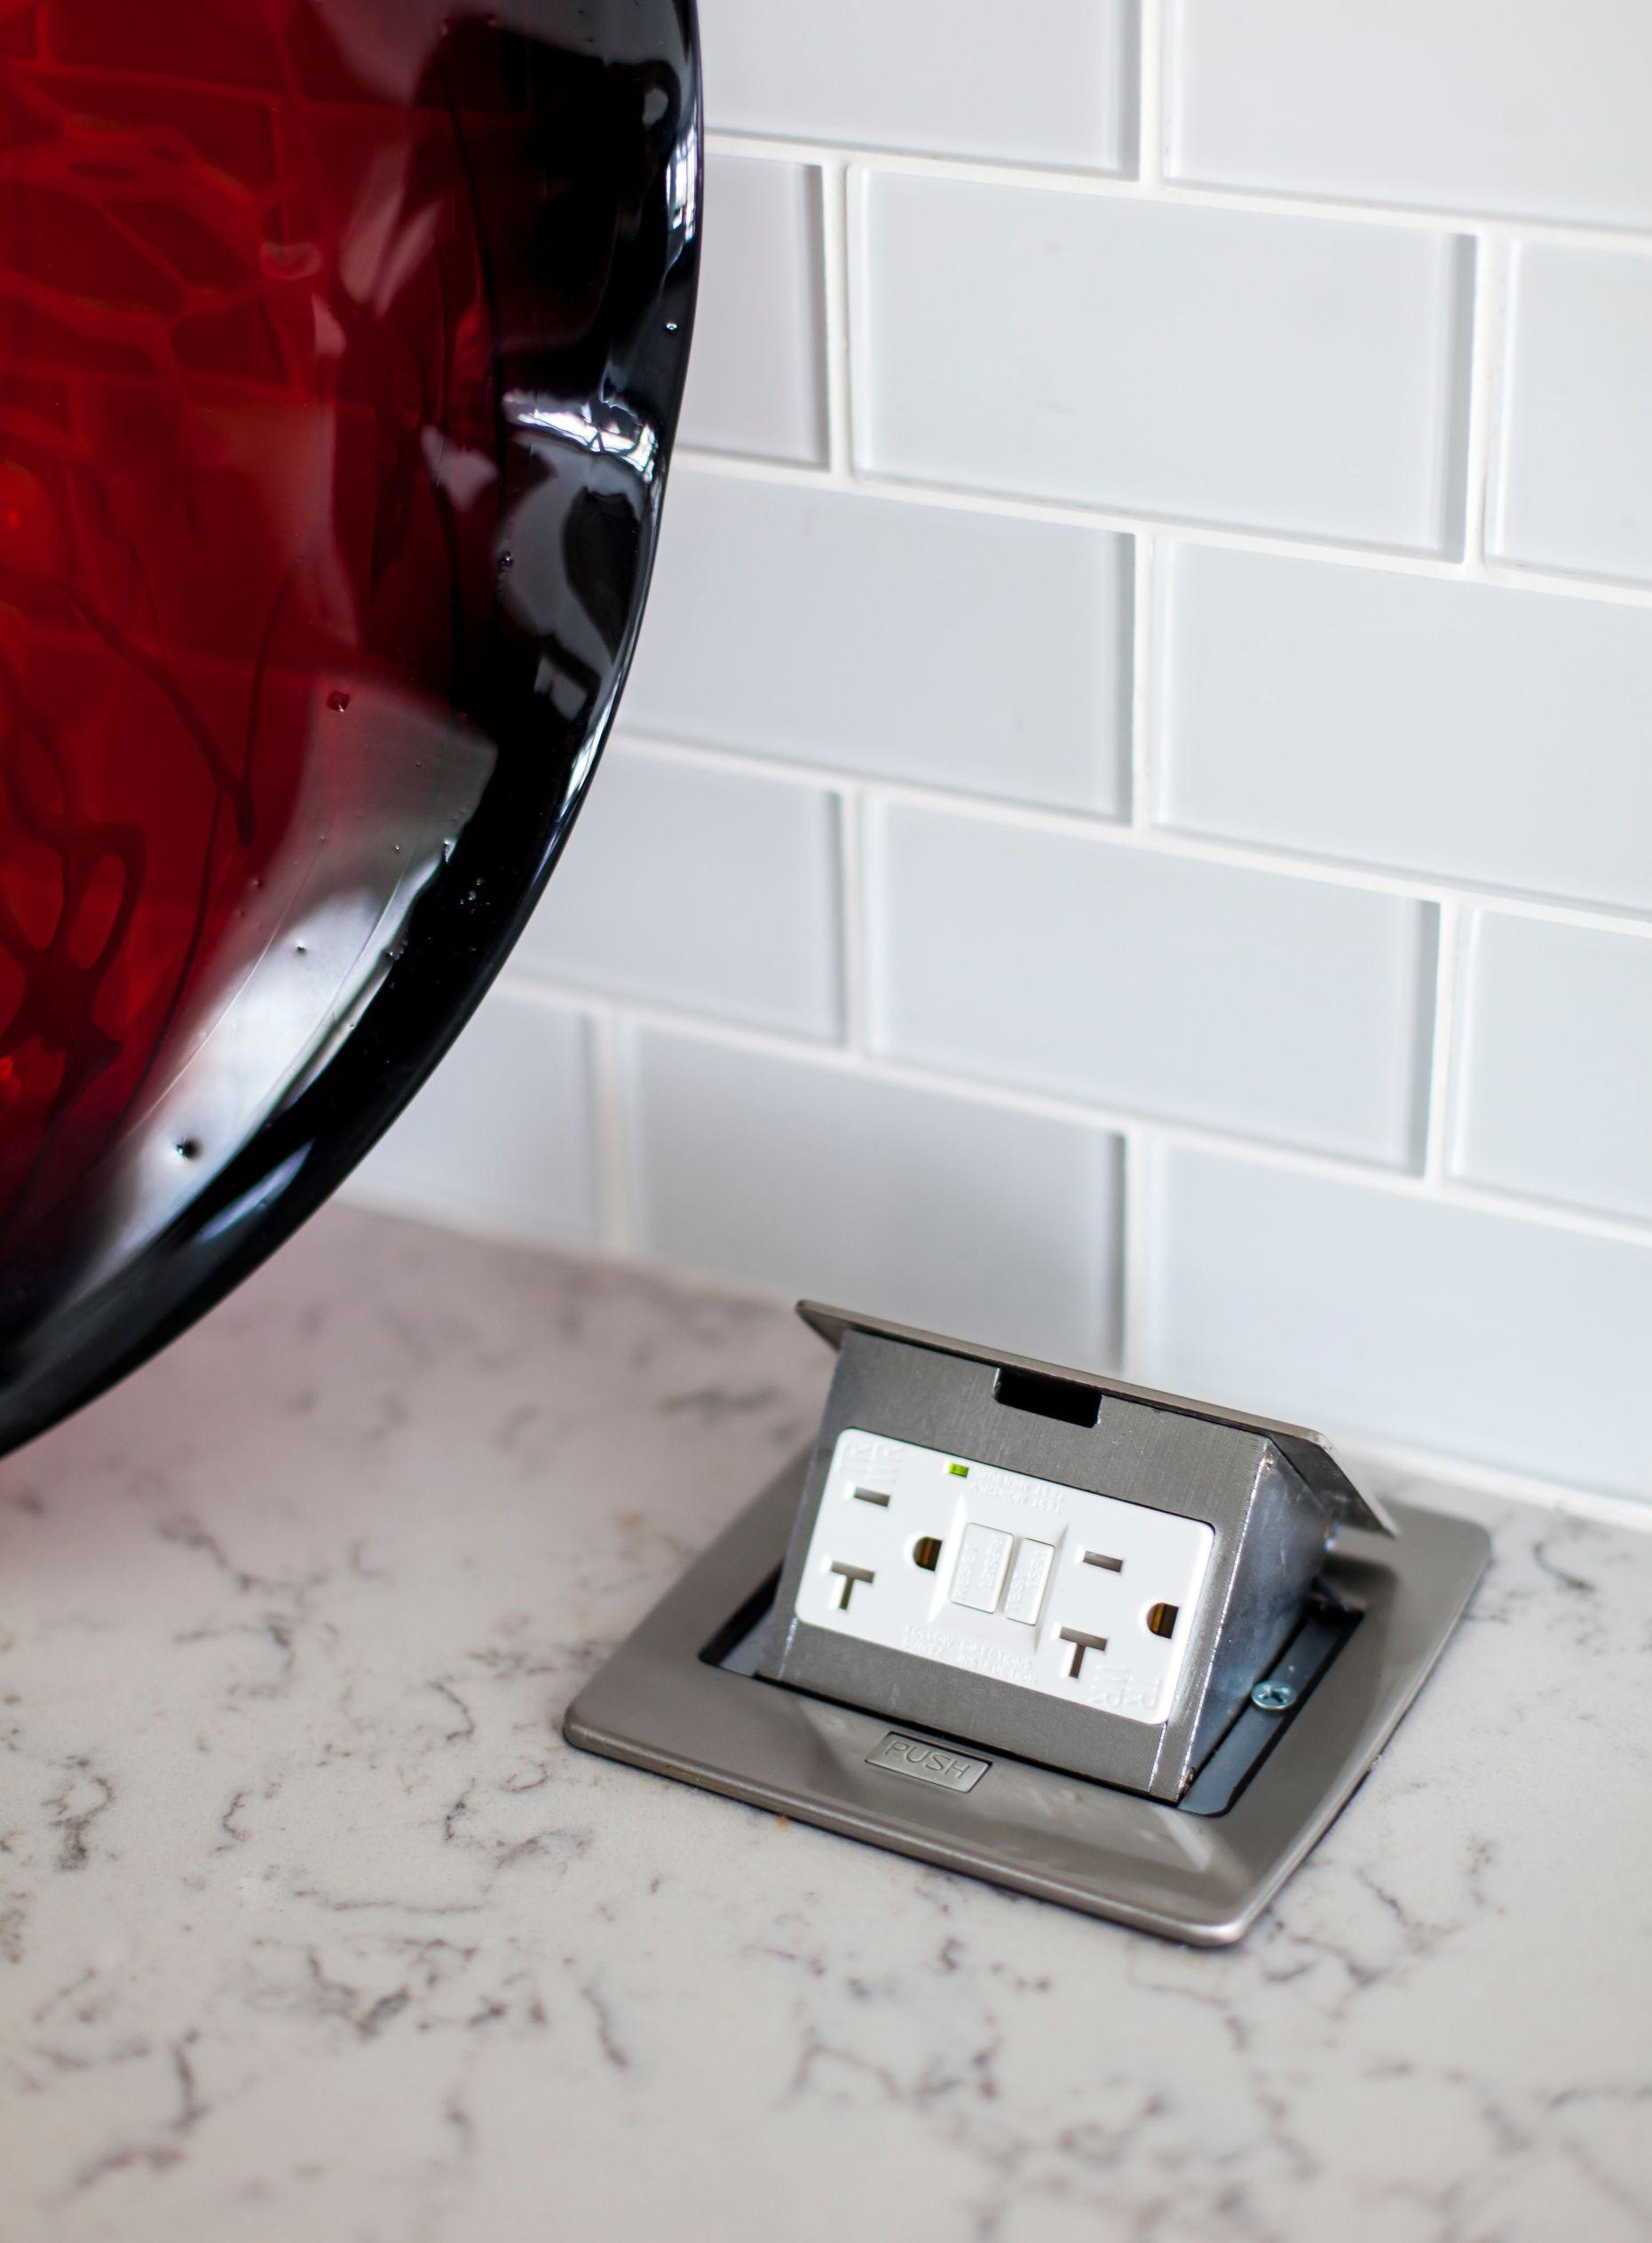 Kitchen Design Idea Install A Pop Up Outlet Directly Into Your Countertop This Allows Clean Look For Backsplash As Well